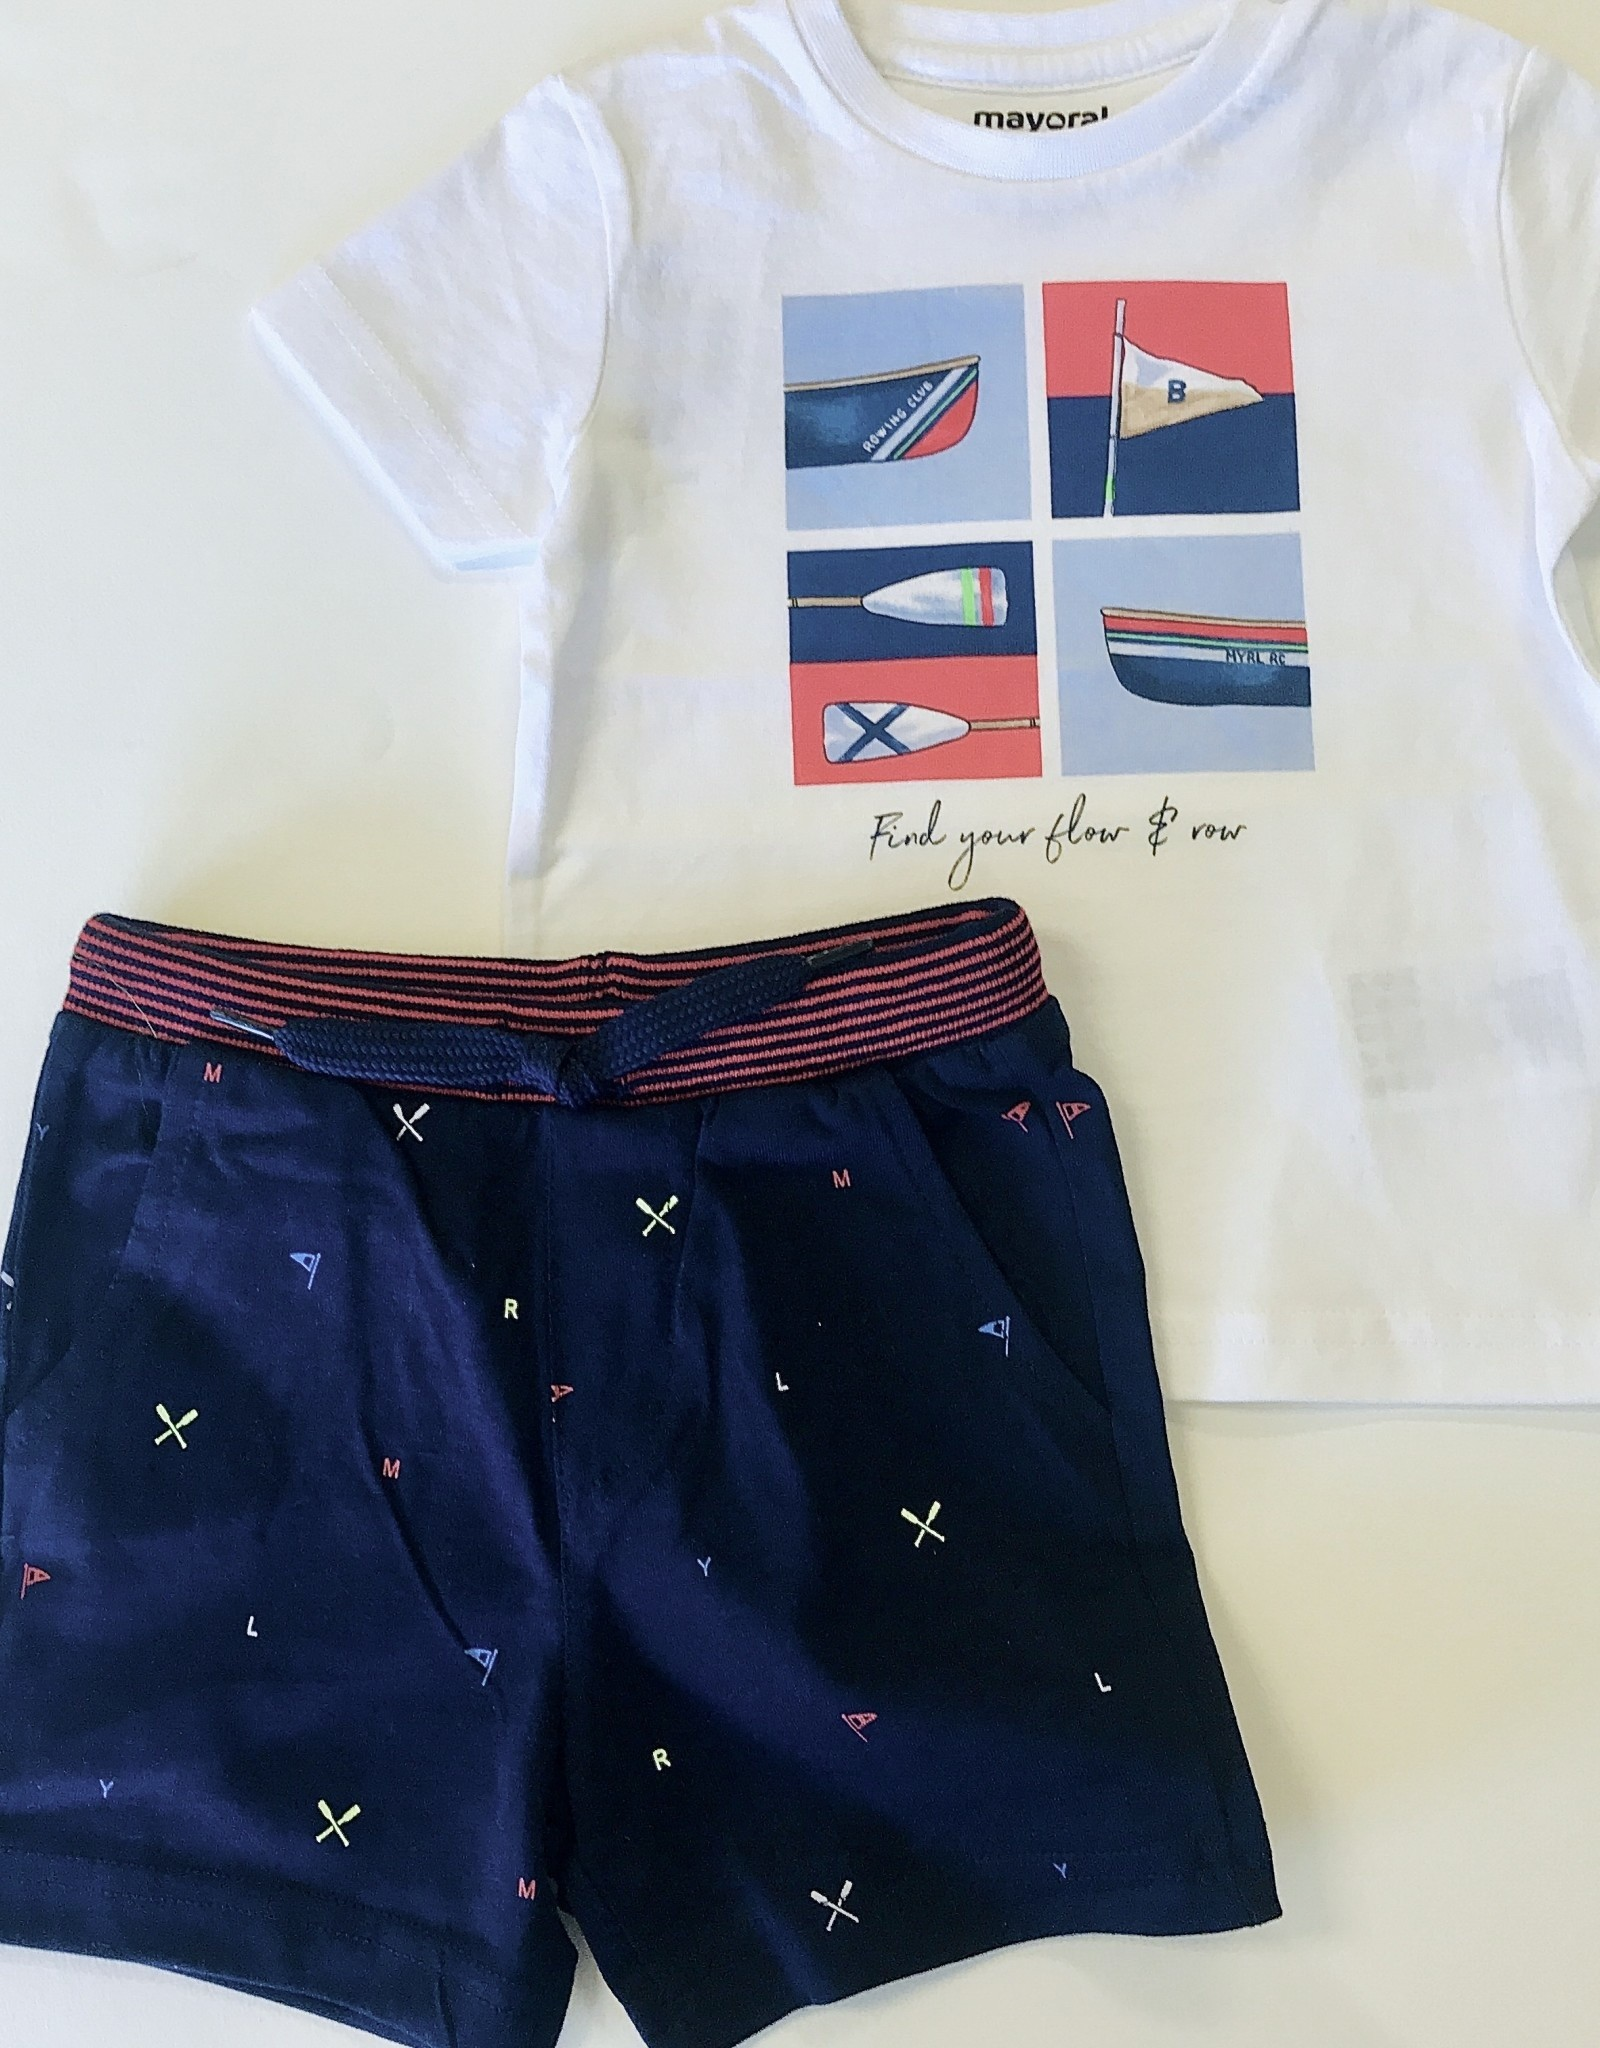 Mayoral Short Navy Knit Flags & Oars 6m - 36m